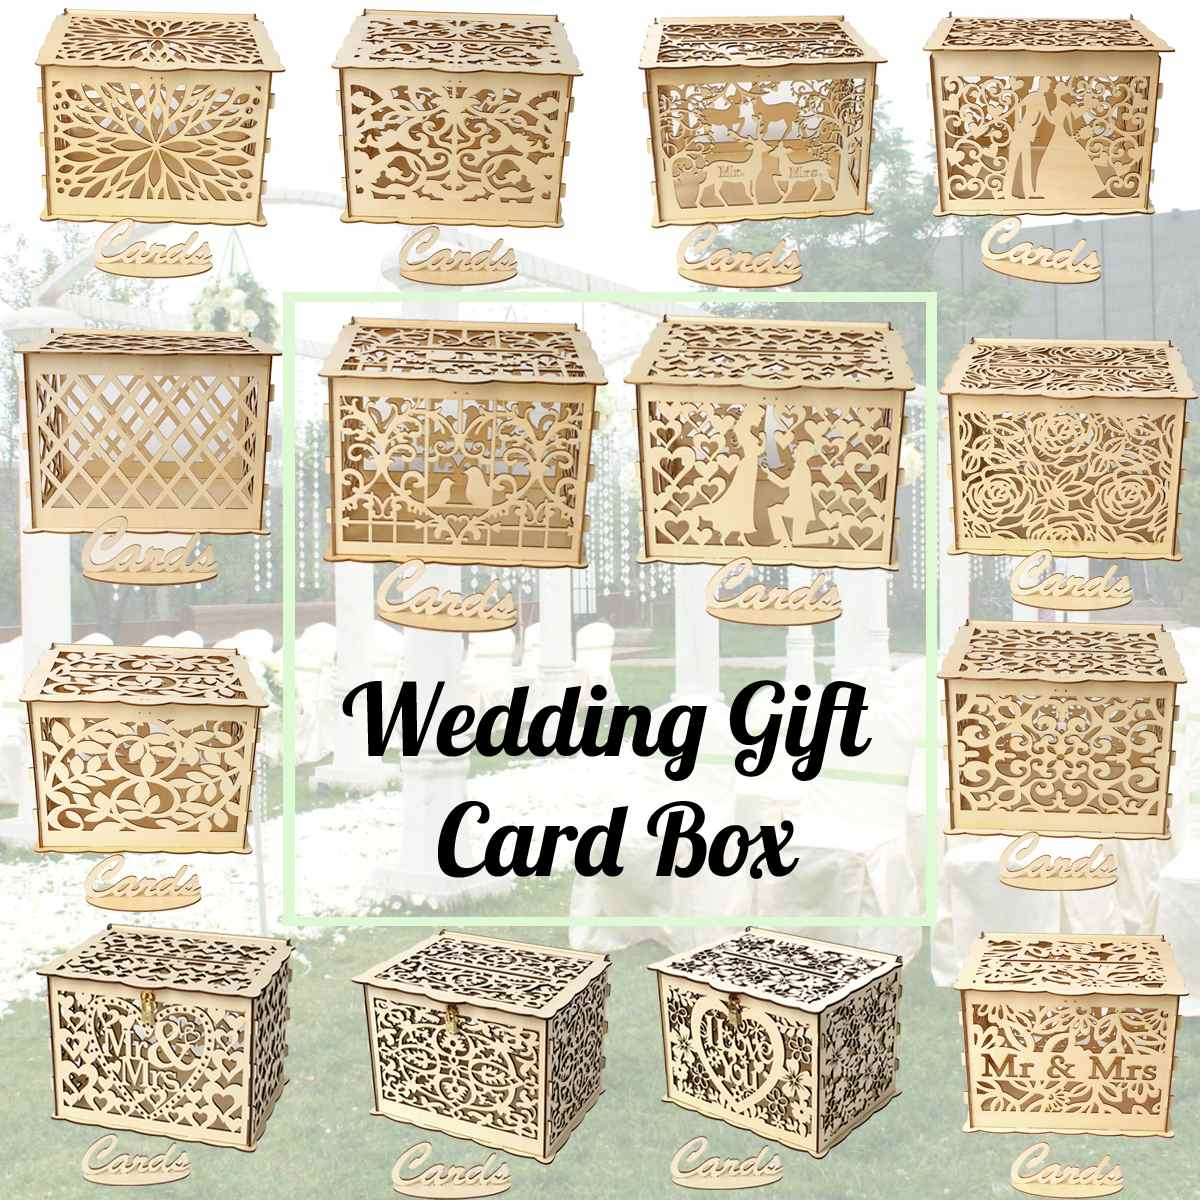 Us 11 61 9 Off 14 Types Diy Wedding Gift Card Box Wooden Money Box With Lock And Key Beautiful Wedding Decoration Supplies For Birthday Party In